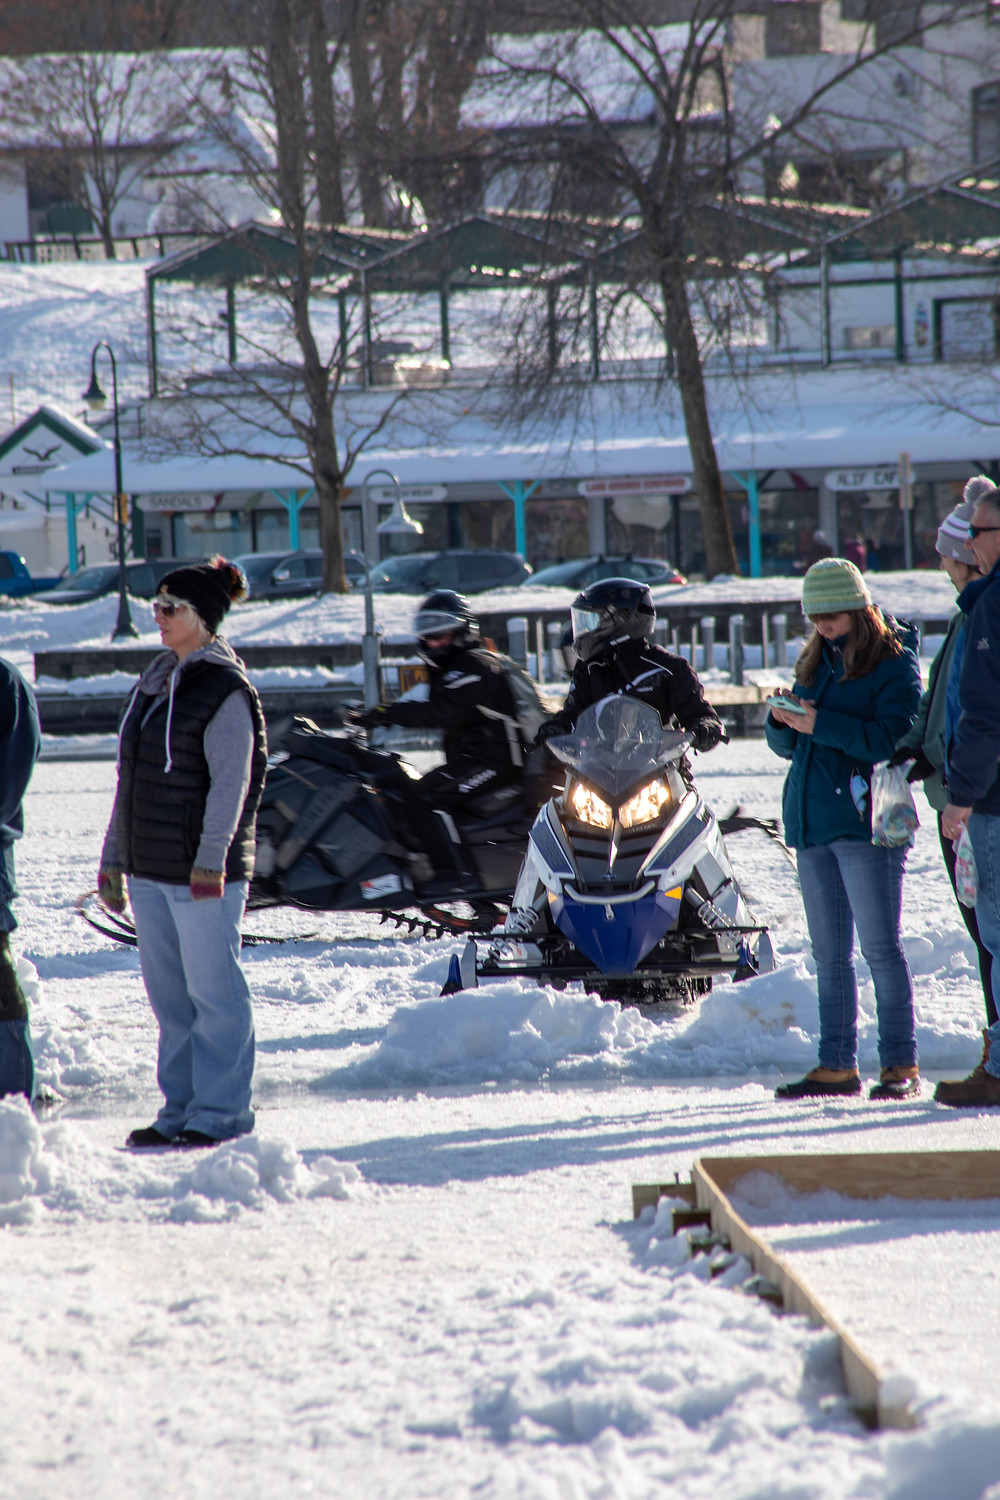 Snowmobilers taking a quick break to watch a game